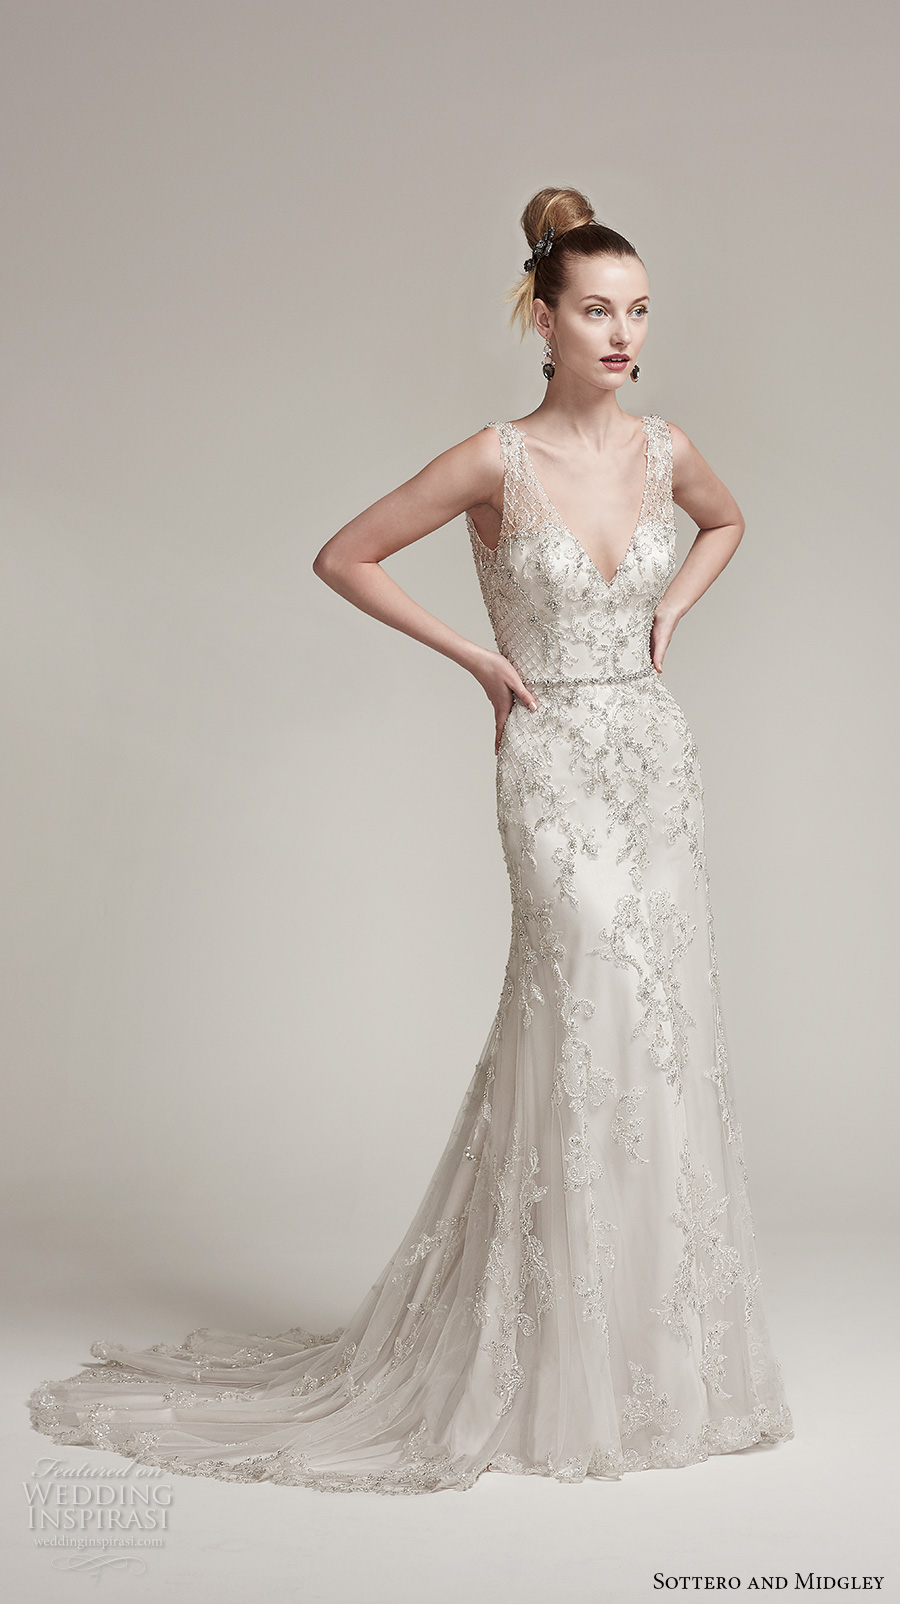 sottero midgley fall 2016 bridal sleeveless thick strap v neck heavily embellished bodice elegant sheath wedding dress v back sweep train (ronnie) mv